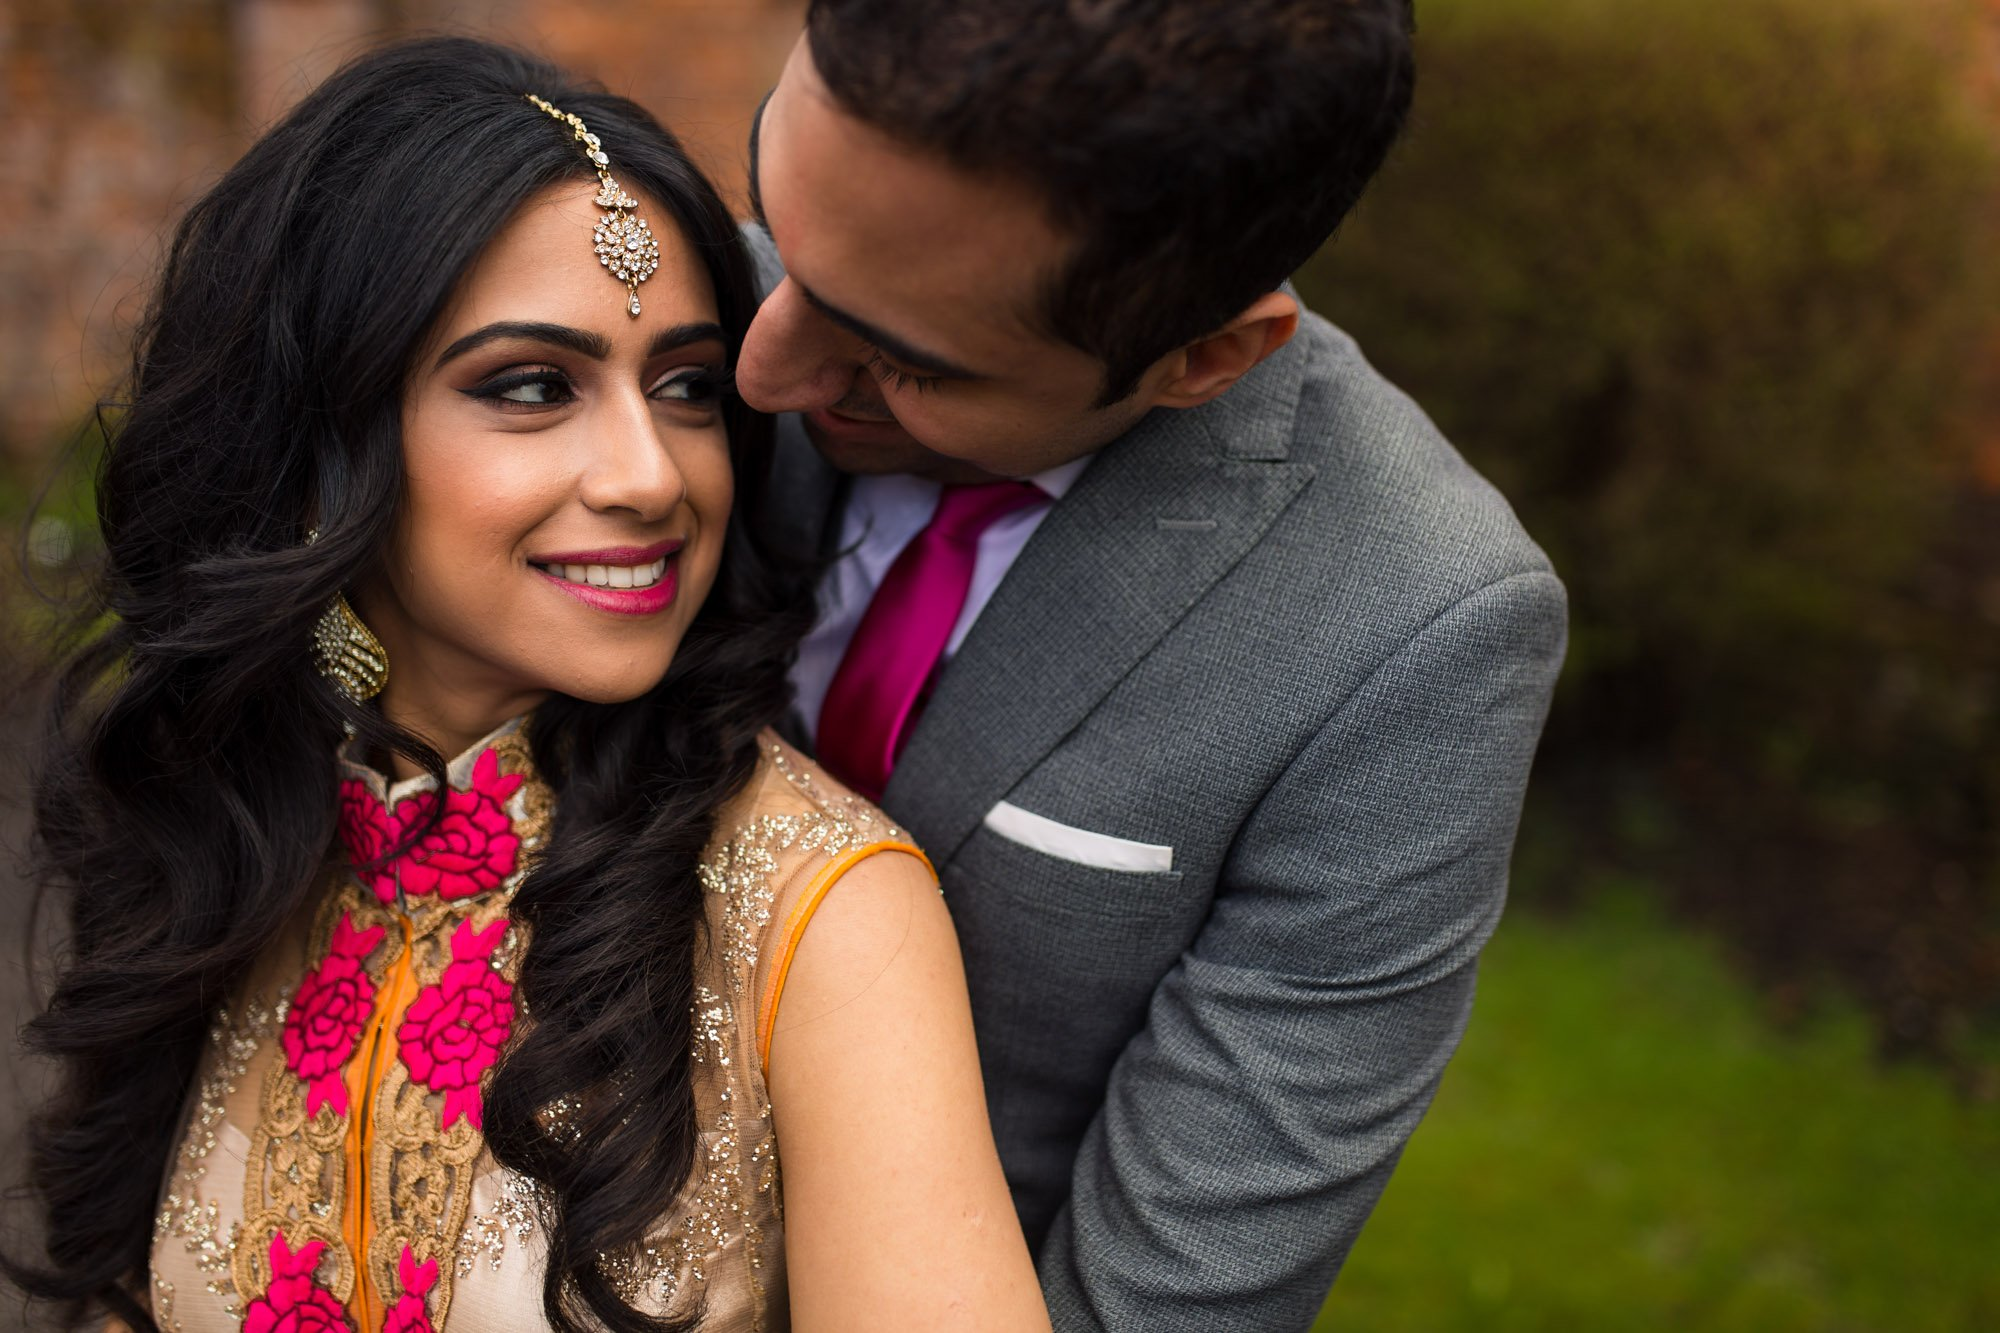 Baylis House, Berkshire, Sikh wedding photographer London, Roka ceremony